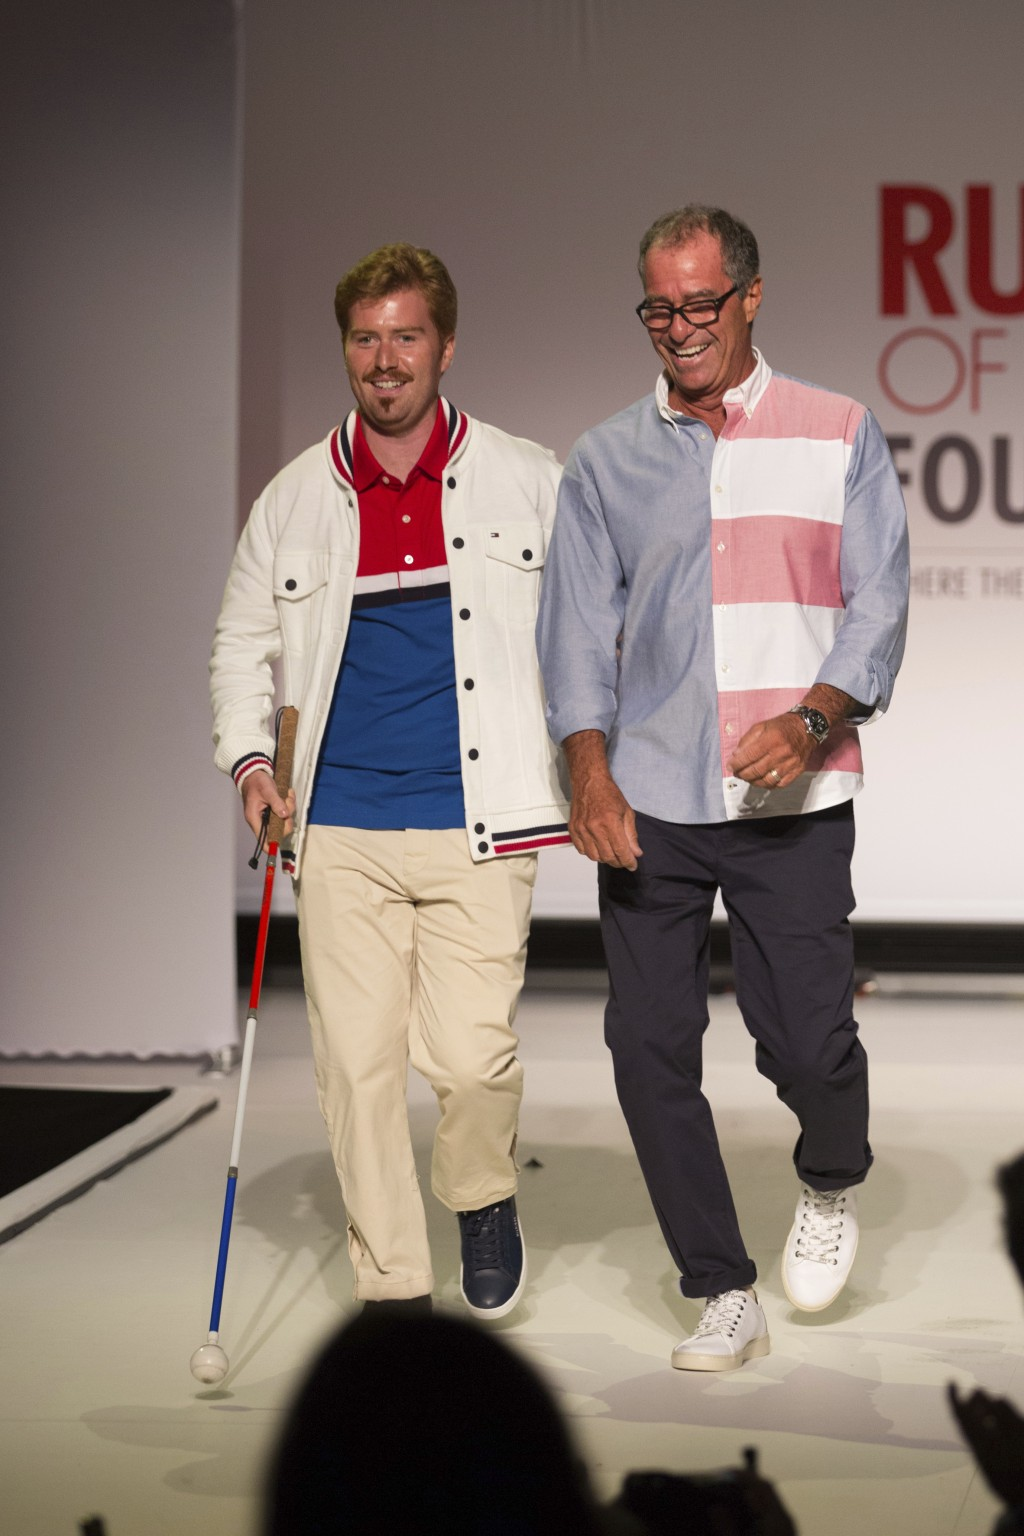 The Runway of Dreams collection is modeled by Griffin Pinkow, left, and his father, Steve Pinkow, Wednesday, Sept. 5, 2018, during Fashion Week in New...